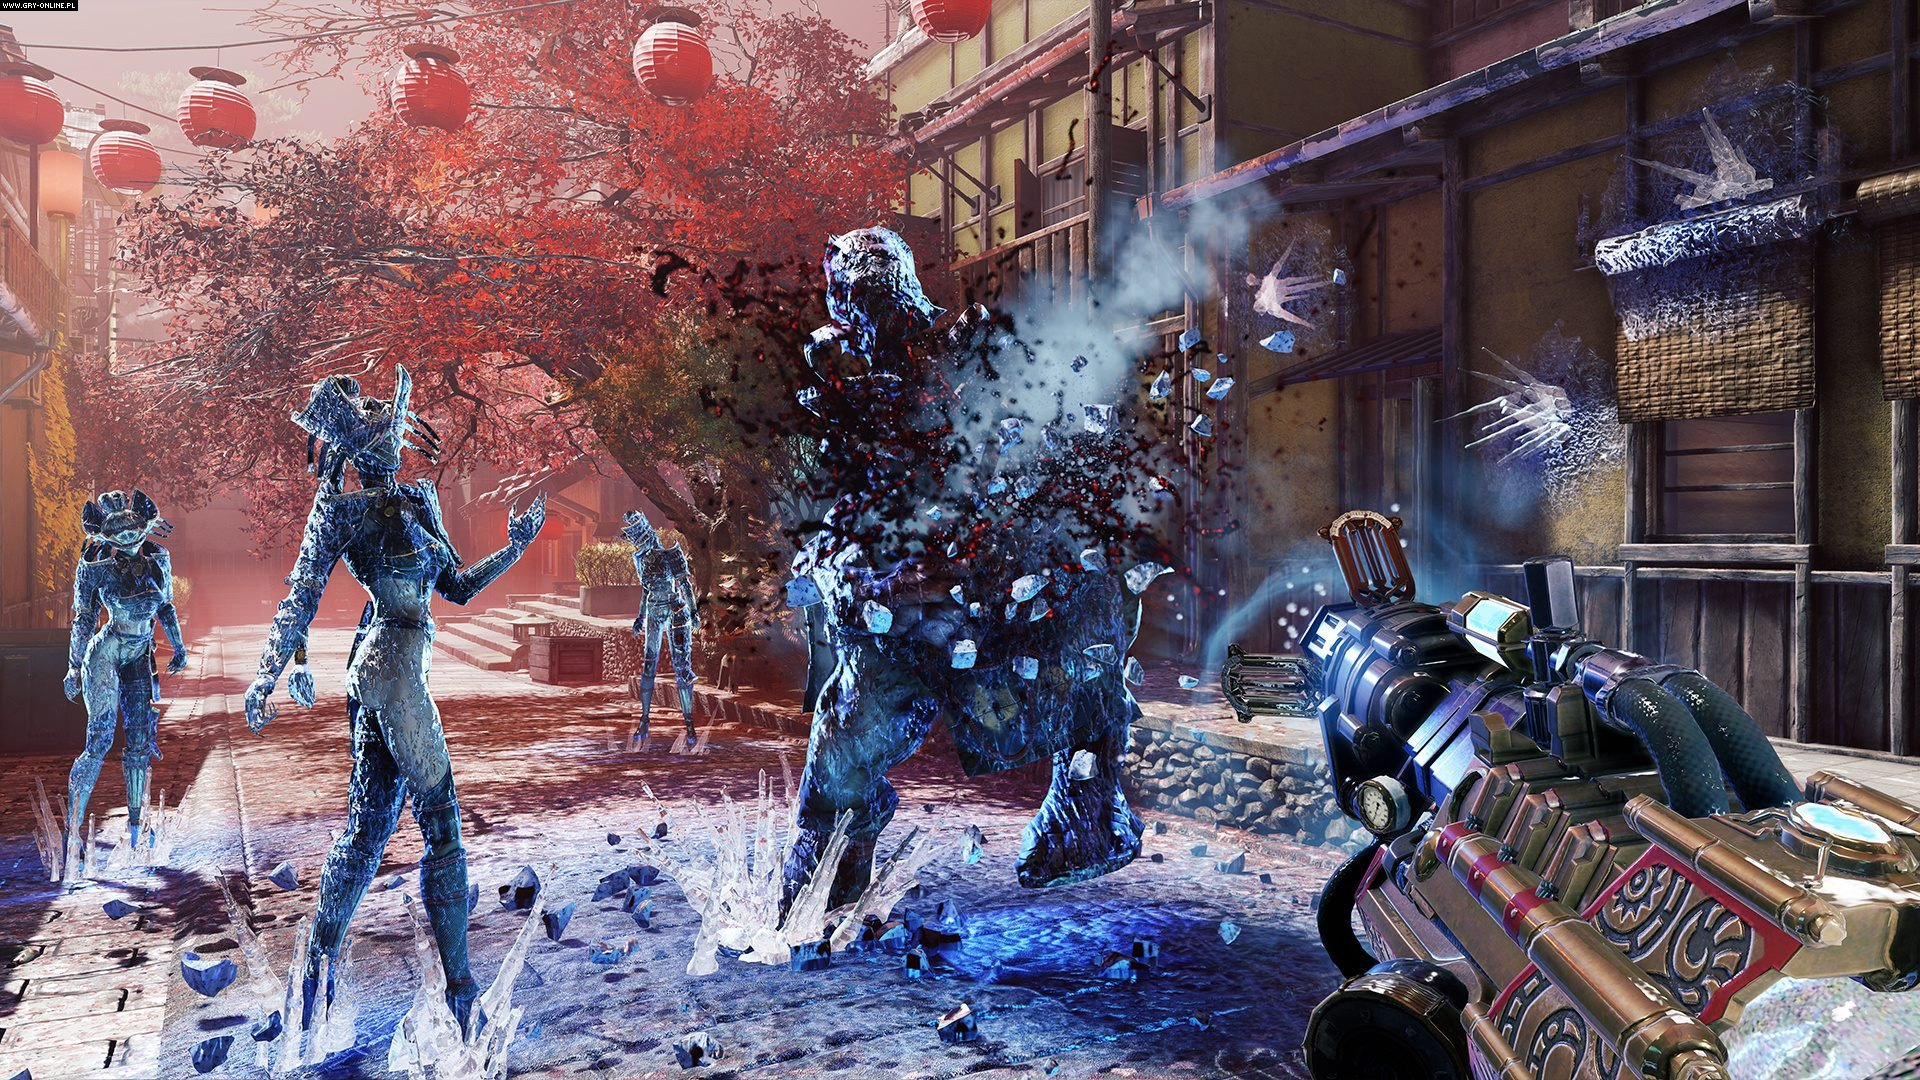 Shadow Warrior 2 PC, PS4, XONE Games Image 36/49, Flying Wild Hog, Devolver Digital